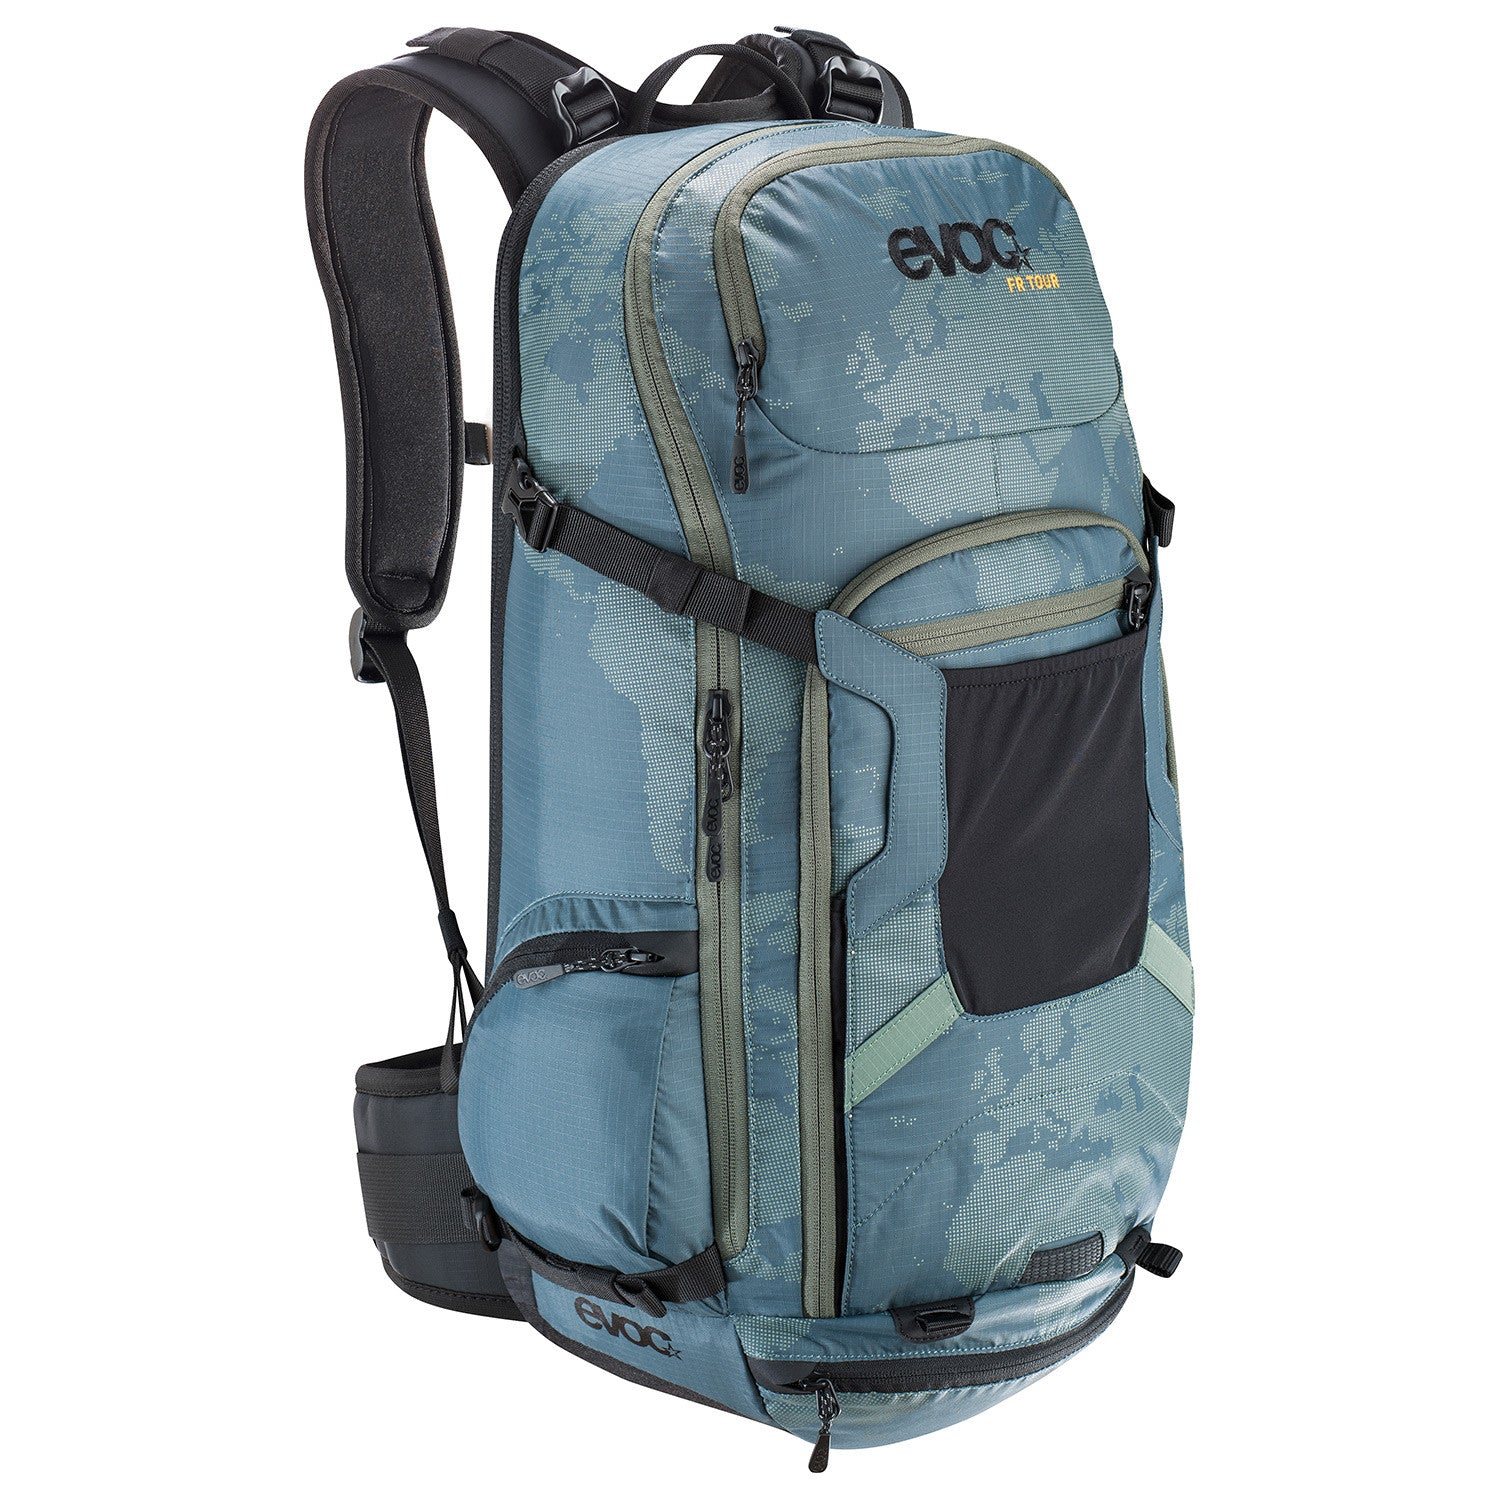 FR Trail 30l - Slate by EVOC